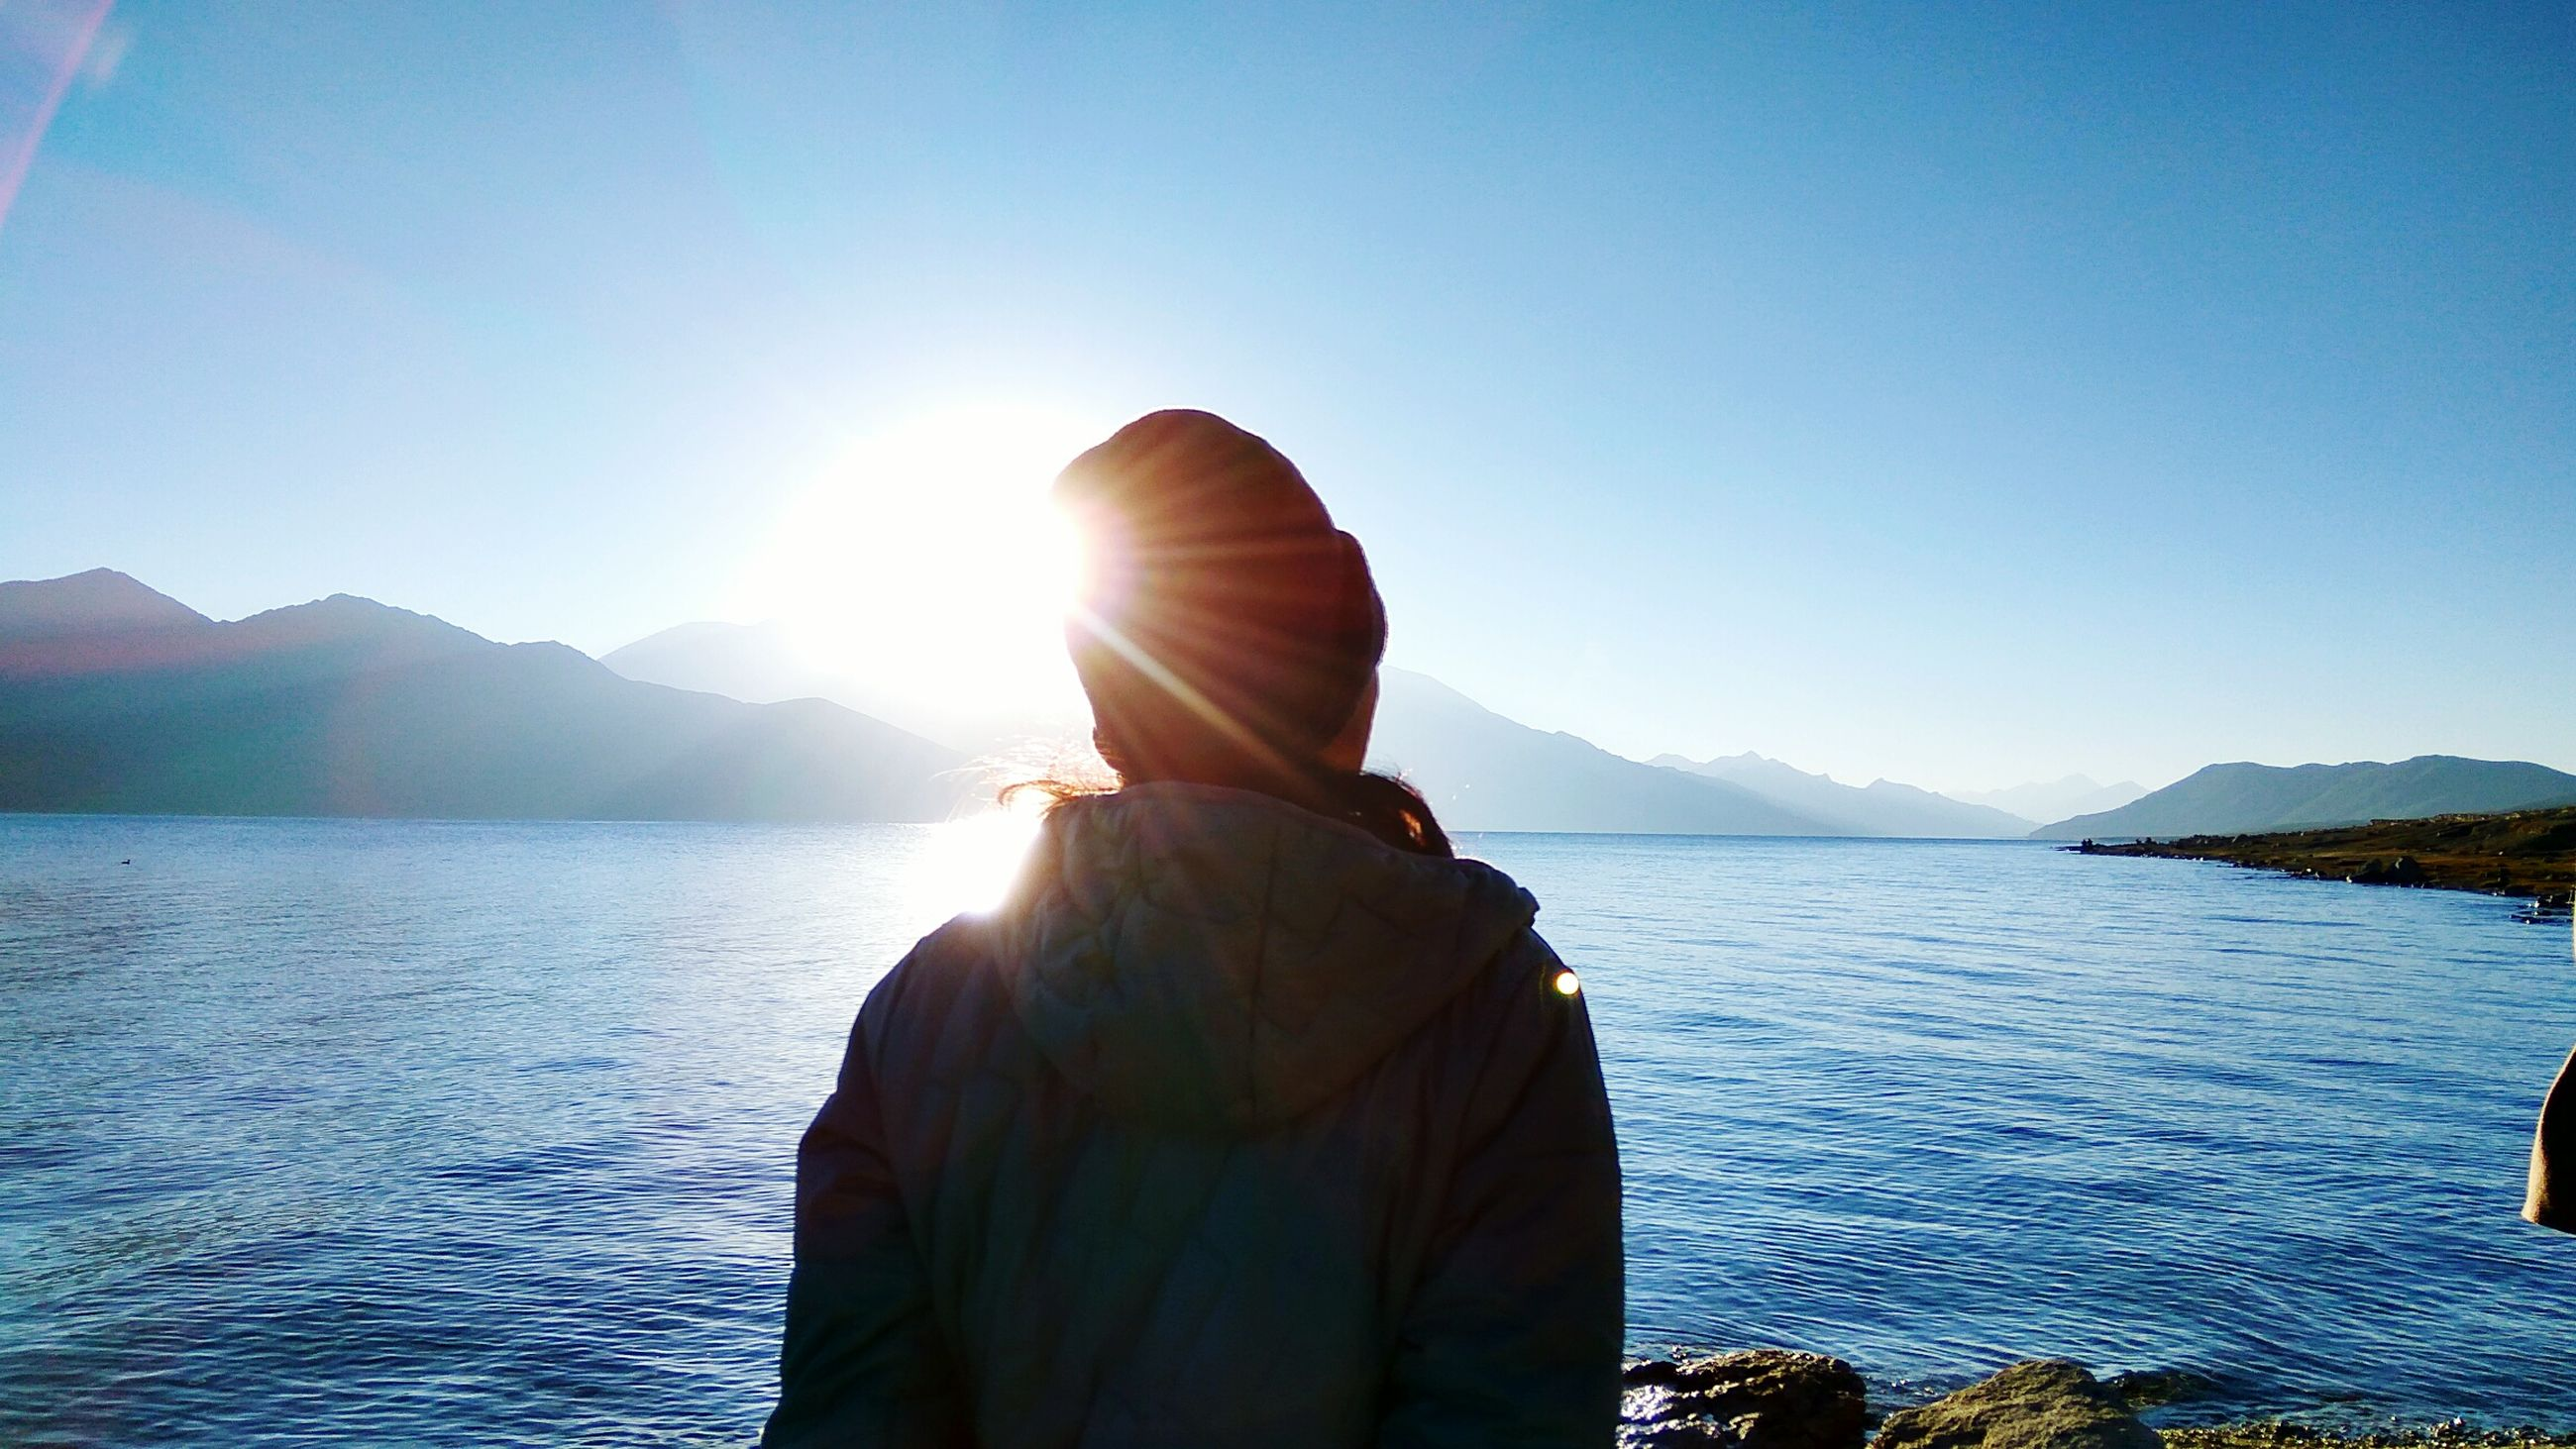 rear view, sunlight, water, reflection, lens flare, one person, blue, mountain, adults only, sky, sunbeam, nature, adult, leisure activity, only women, tranquility, beauty in nature, clear sky, day, one woman only, lake, people, real people, sun, outdoors